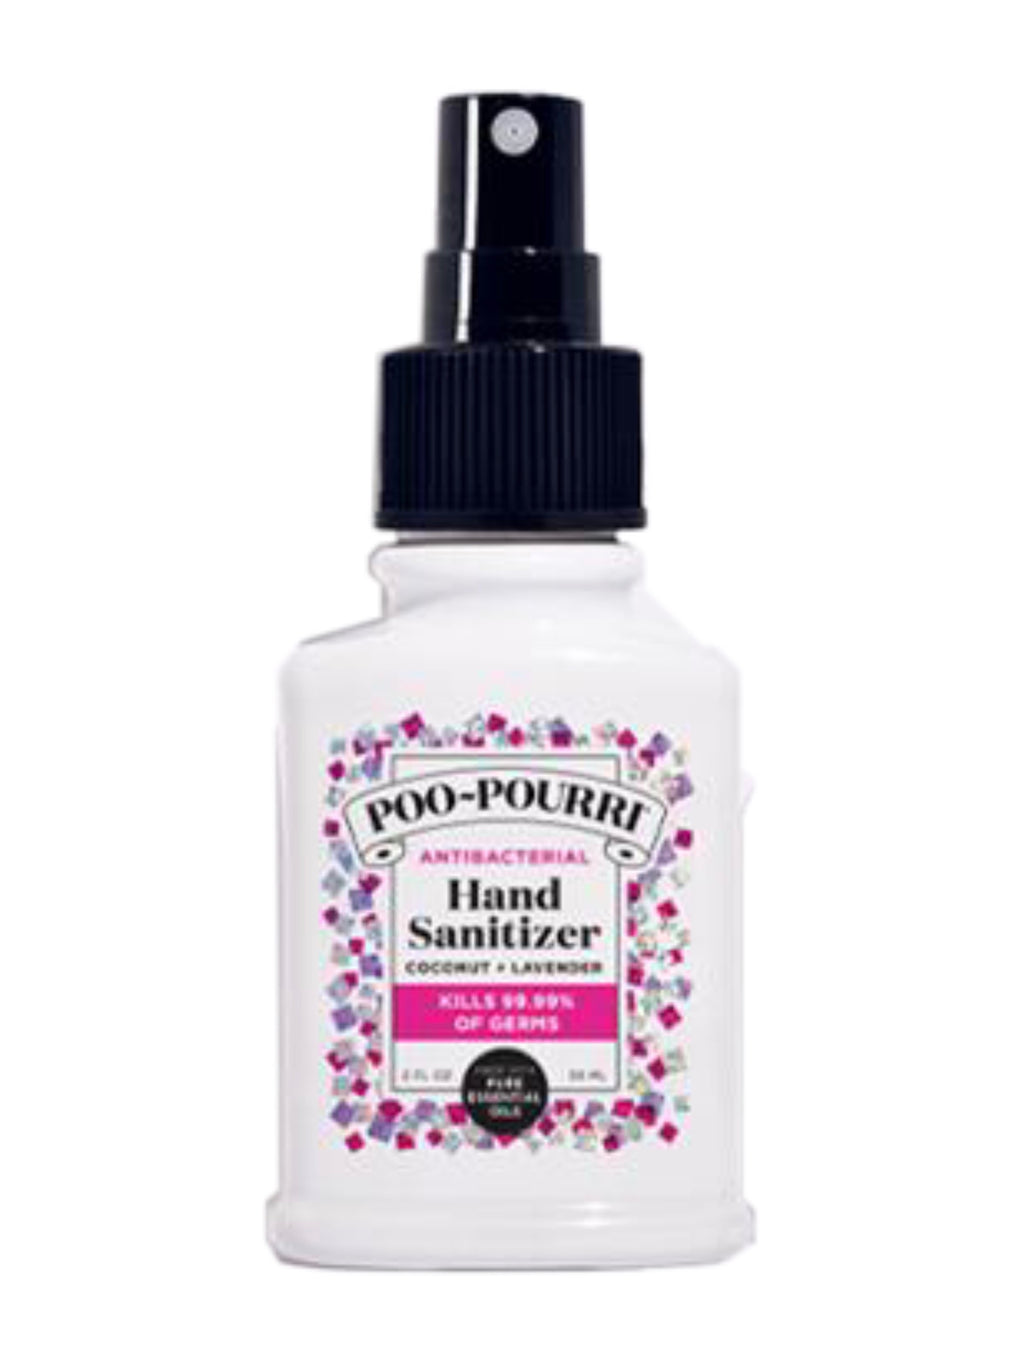 Sparkle Poo-Pourri Hand Sanitizer